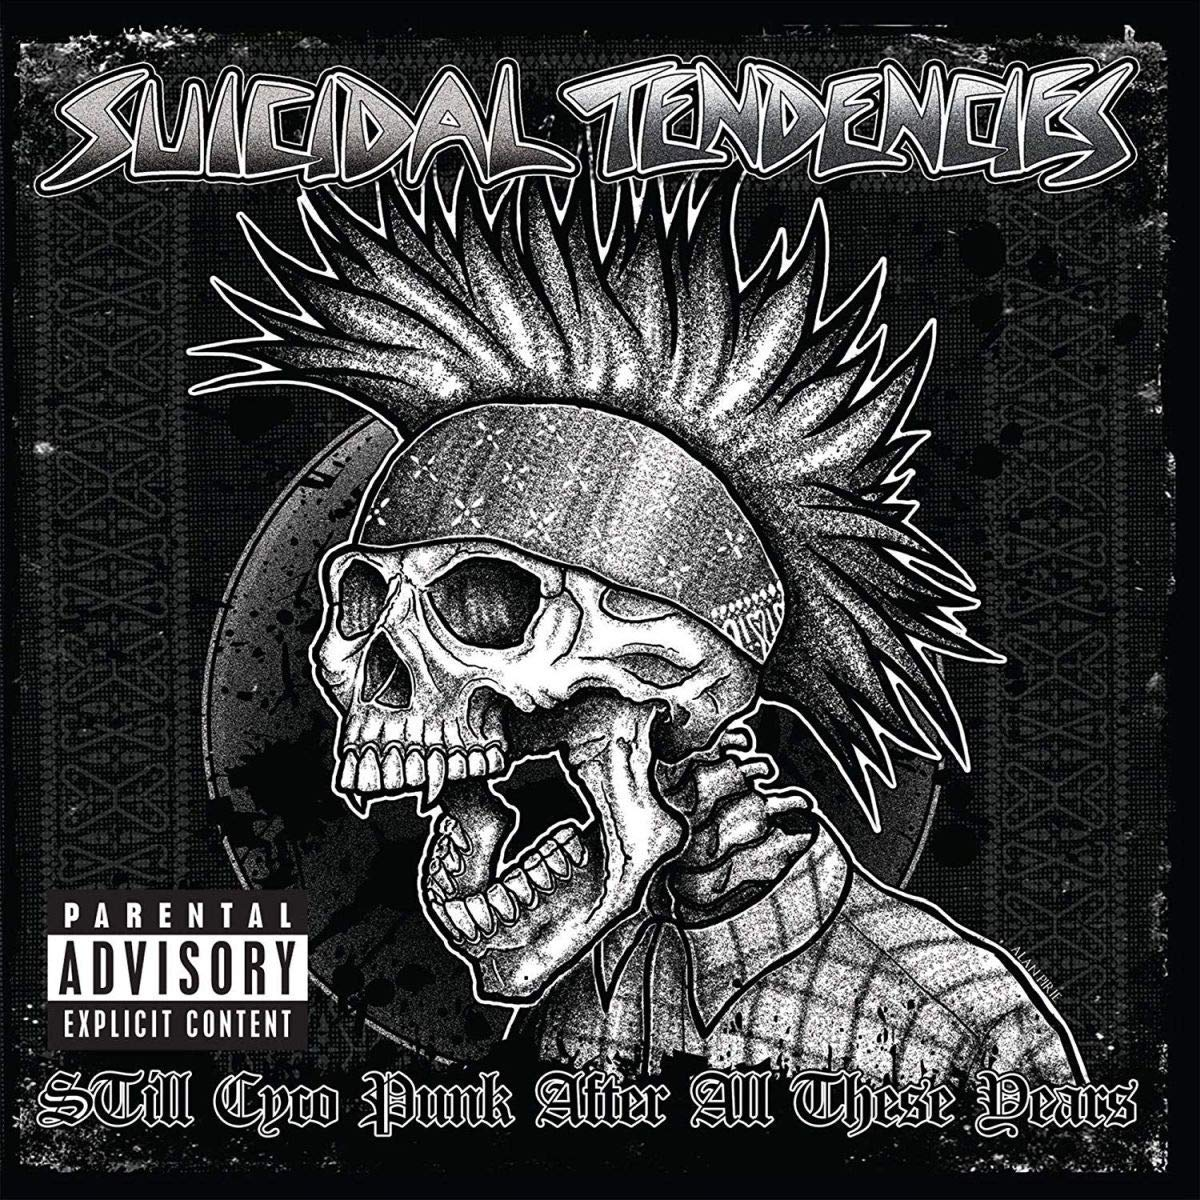 CD : Suicidal Tendencies - Still Cyco Punk After All These Years (CD)